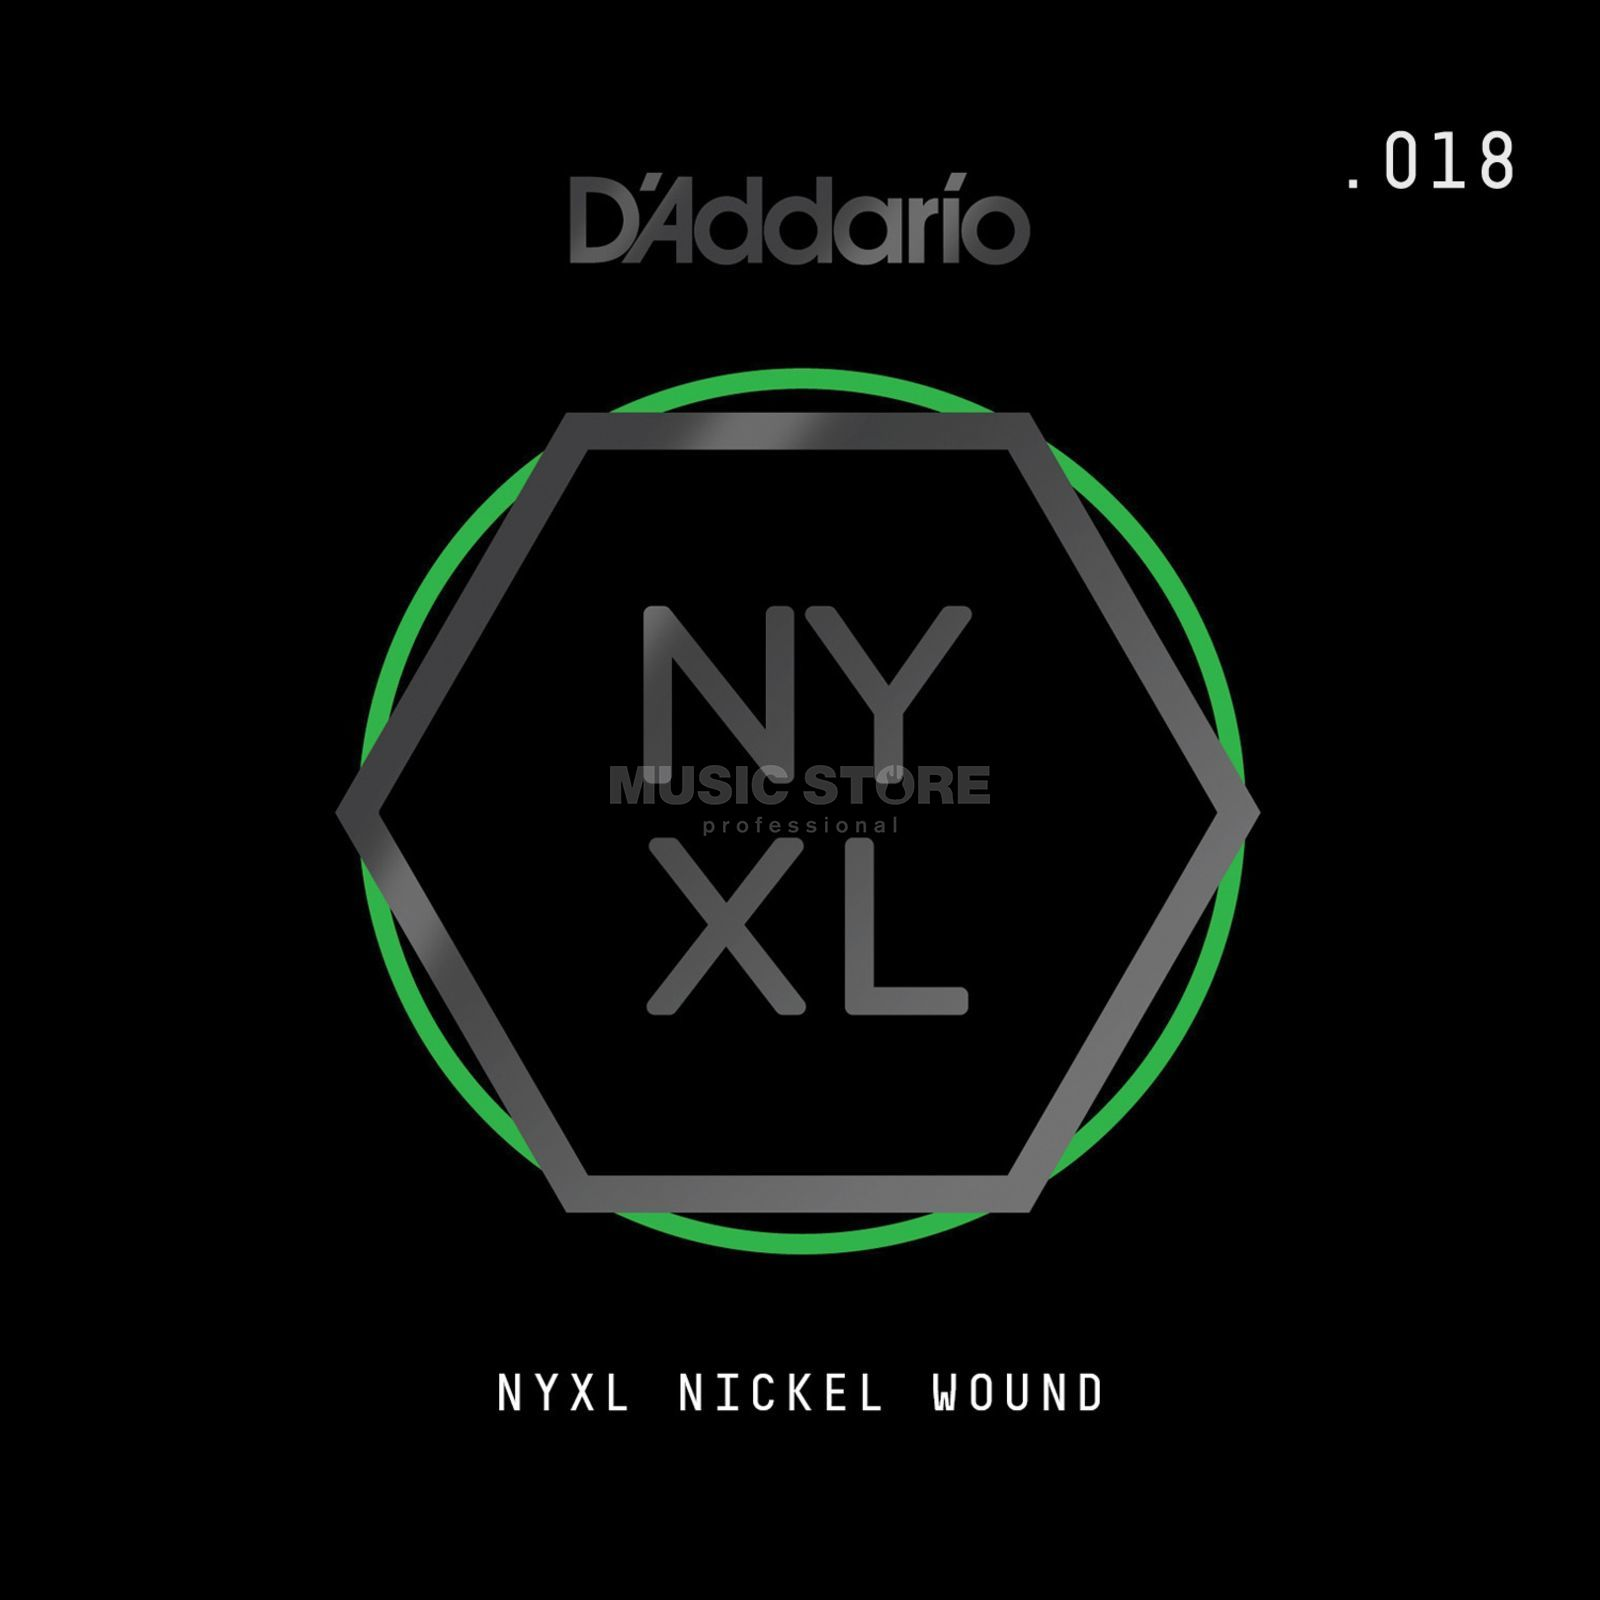 D'Addario NYNW018 Single String Nickel Wound Product Image